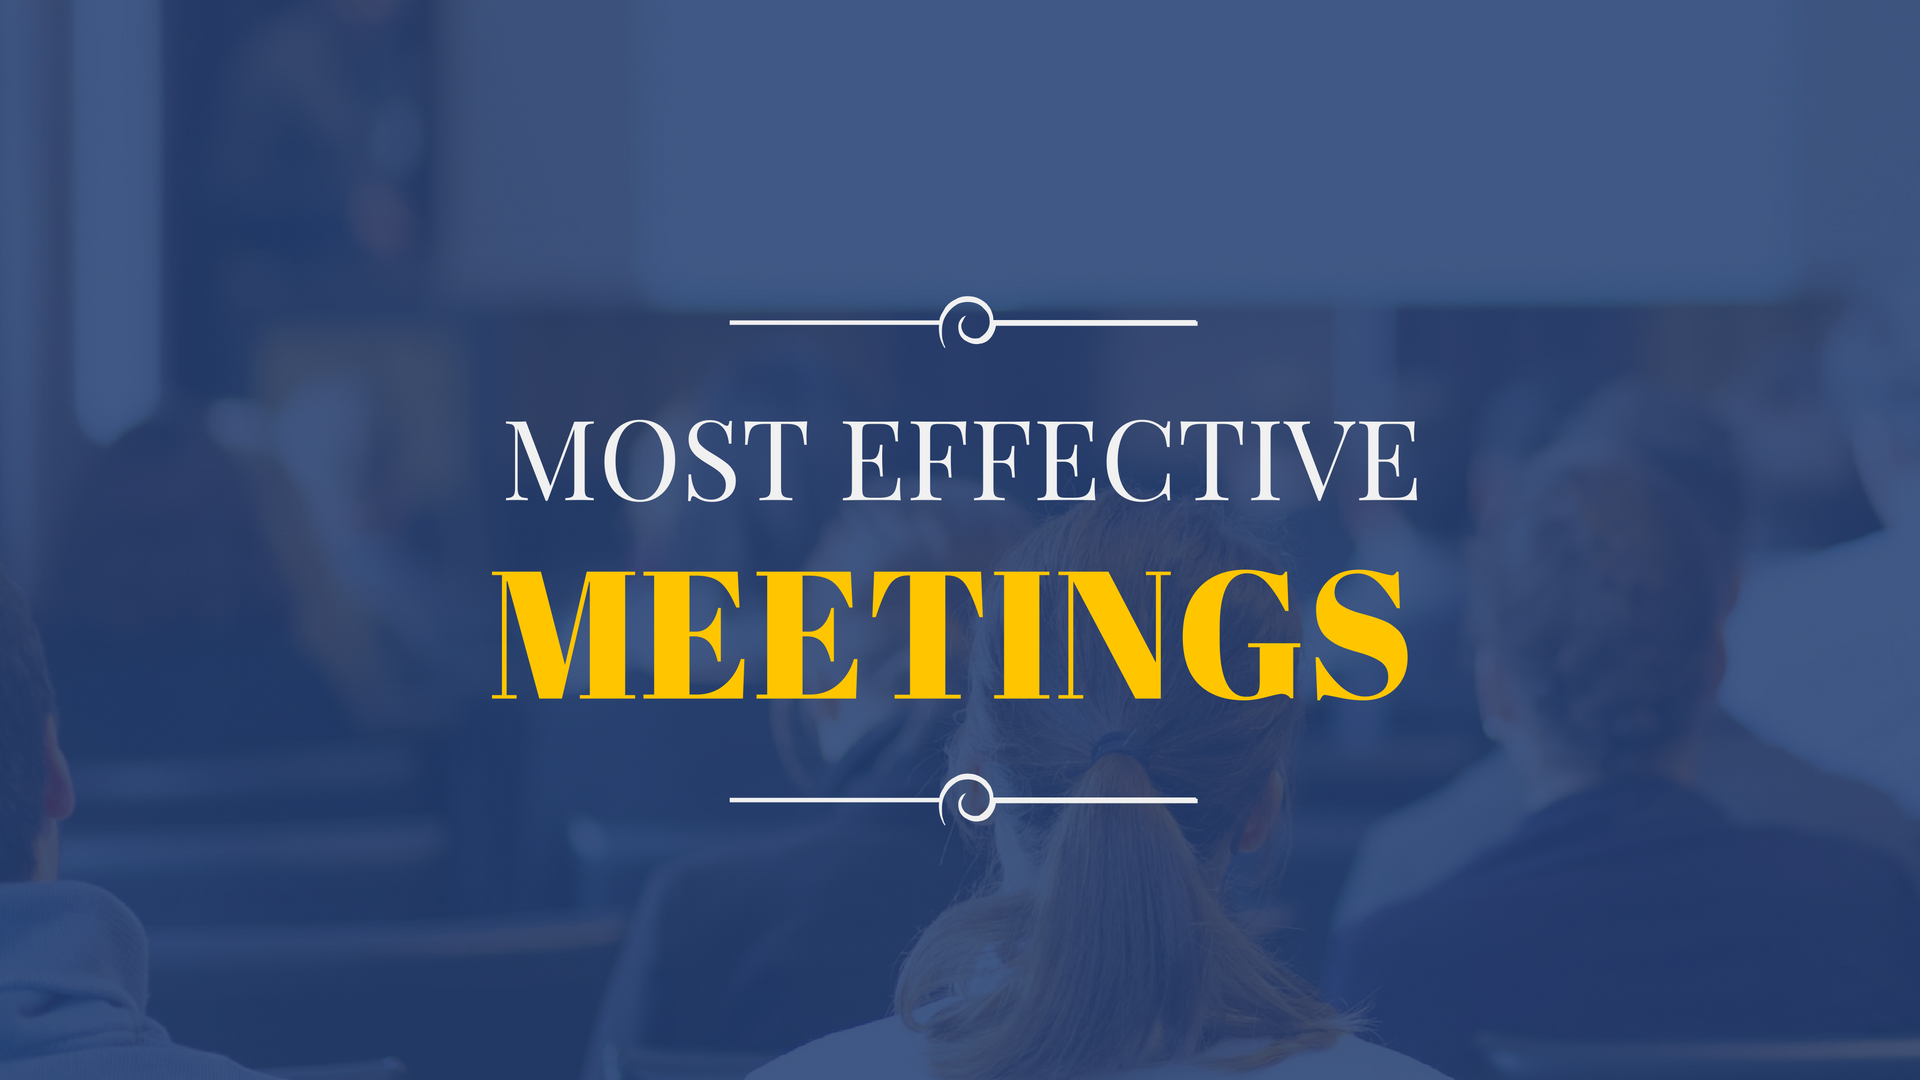 The Most Effective Meetings For Your Business